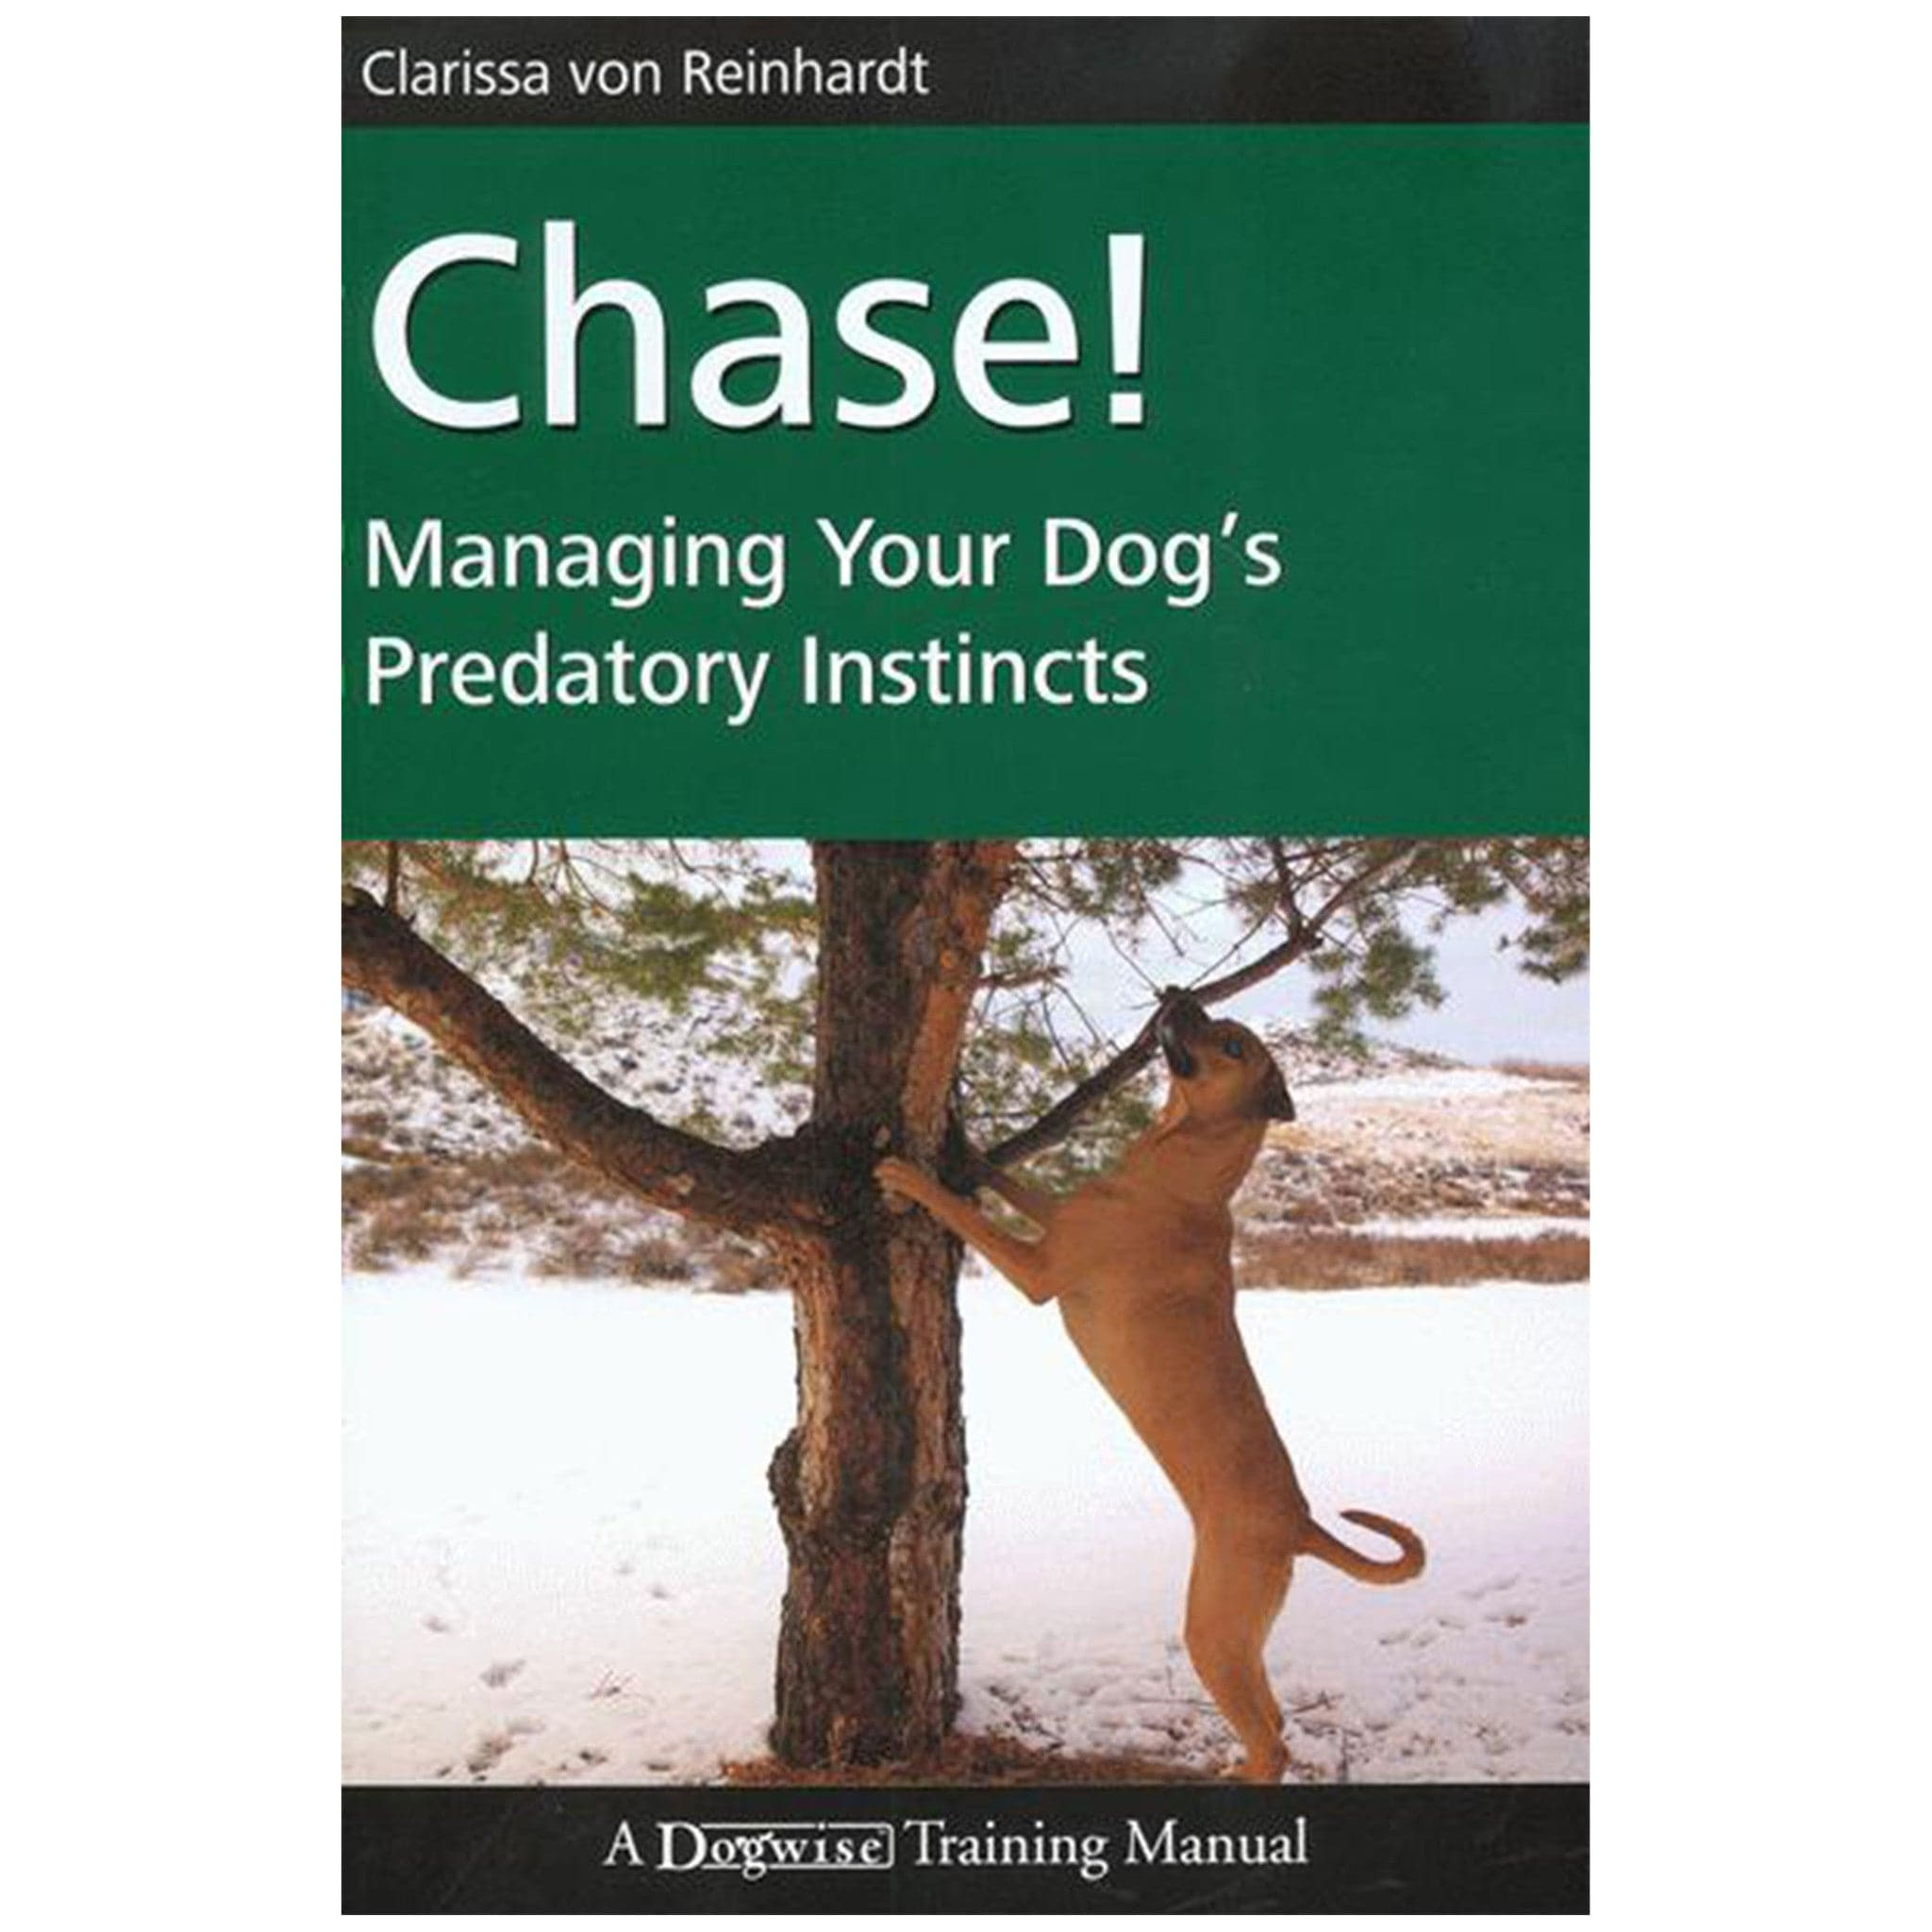 Chase! Managing Your Dog's Predatory Instincts